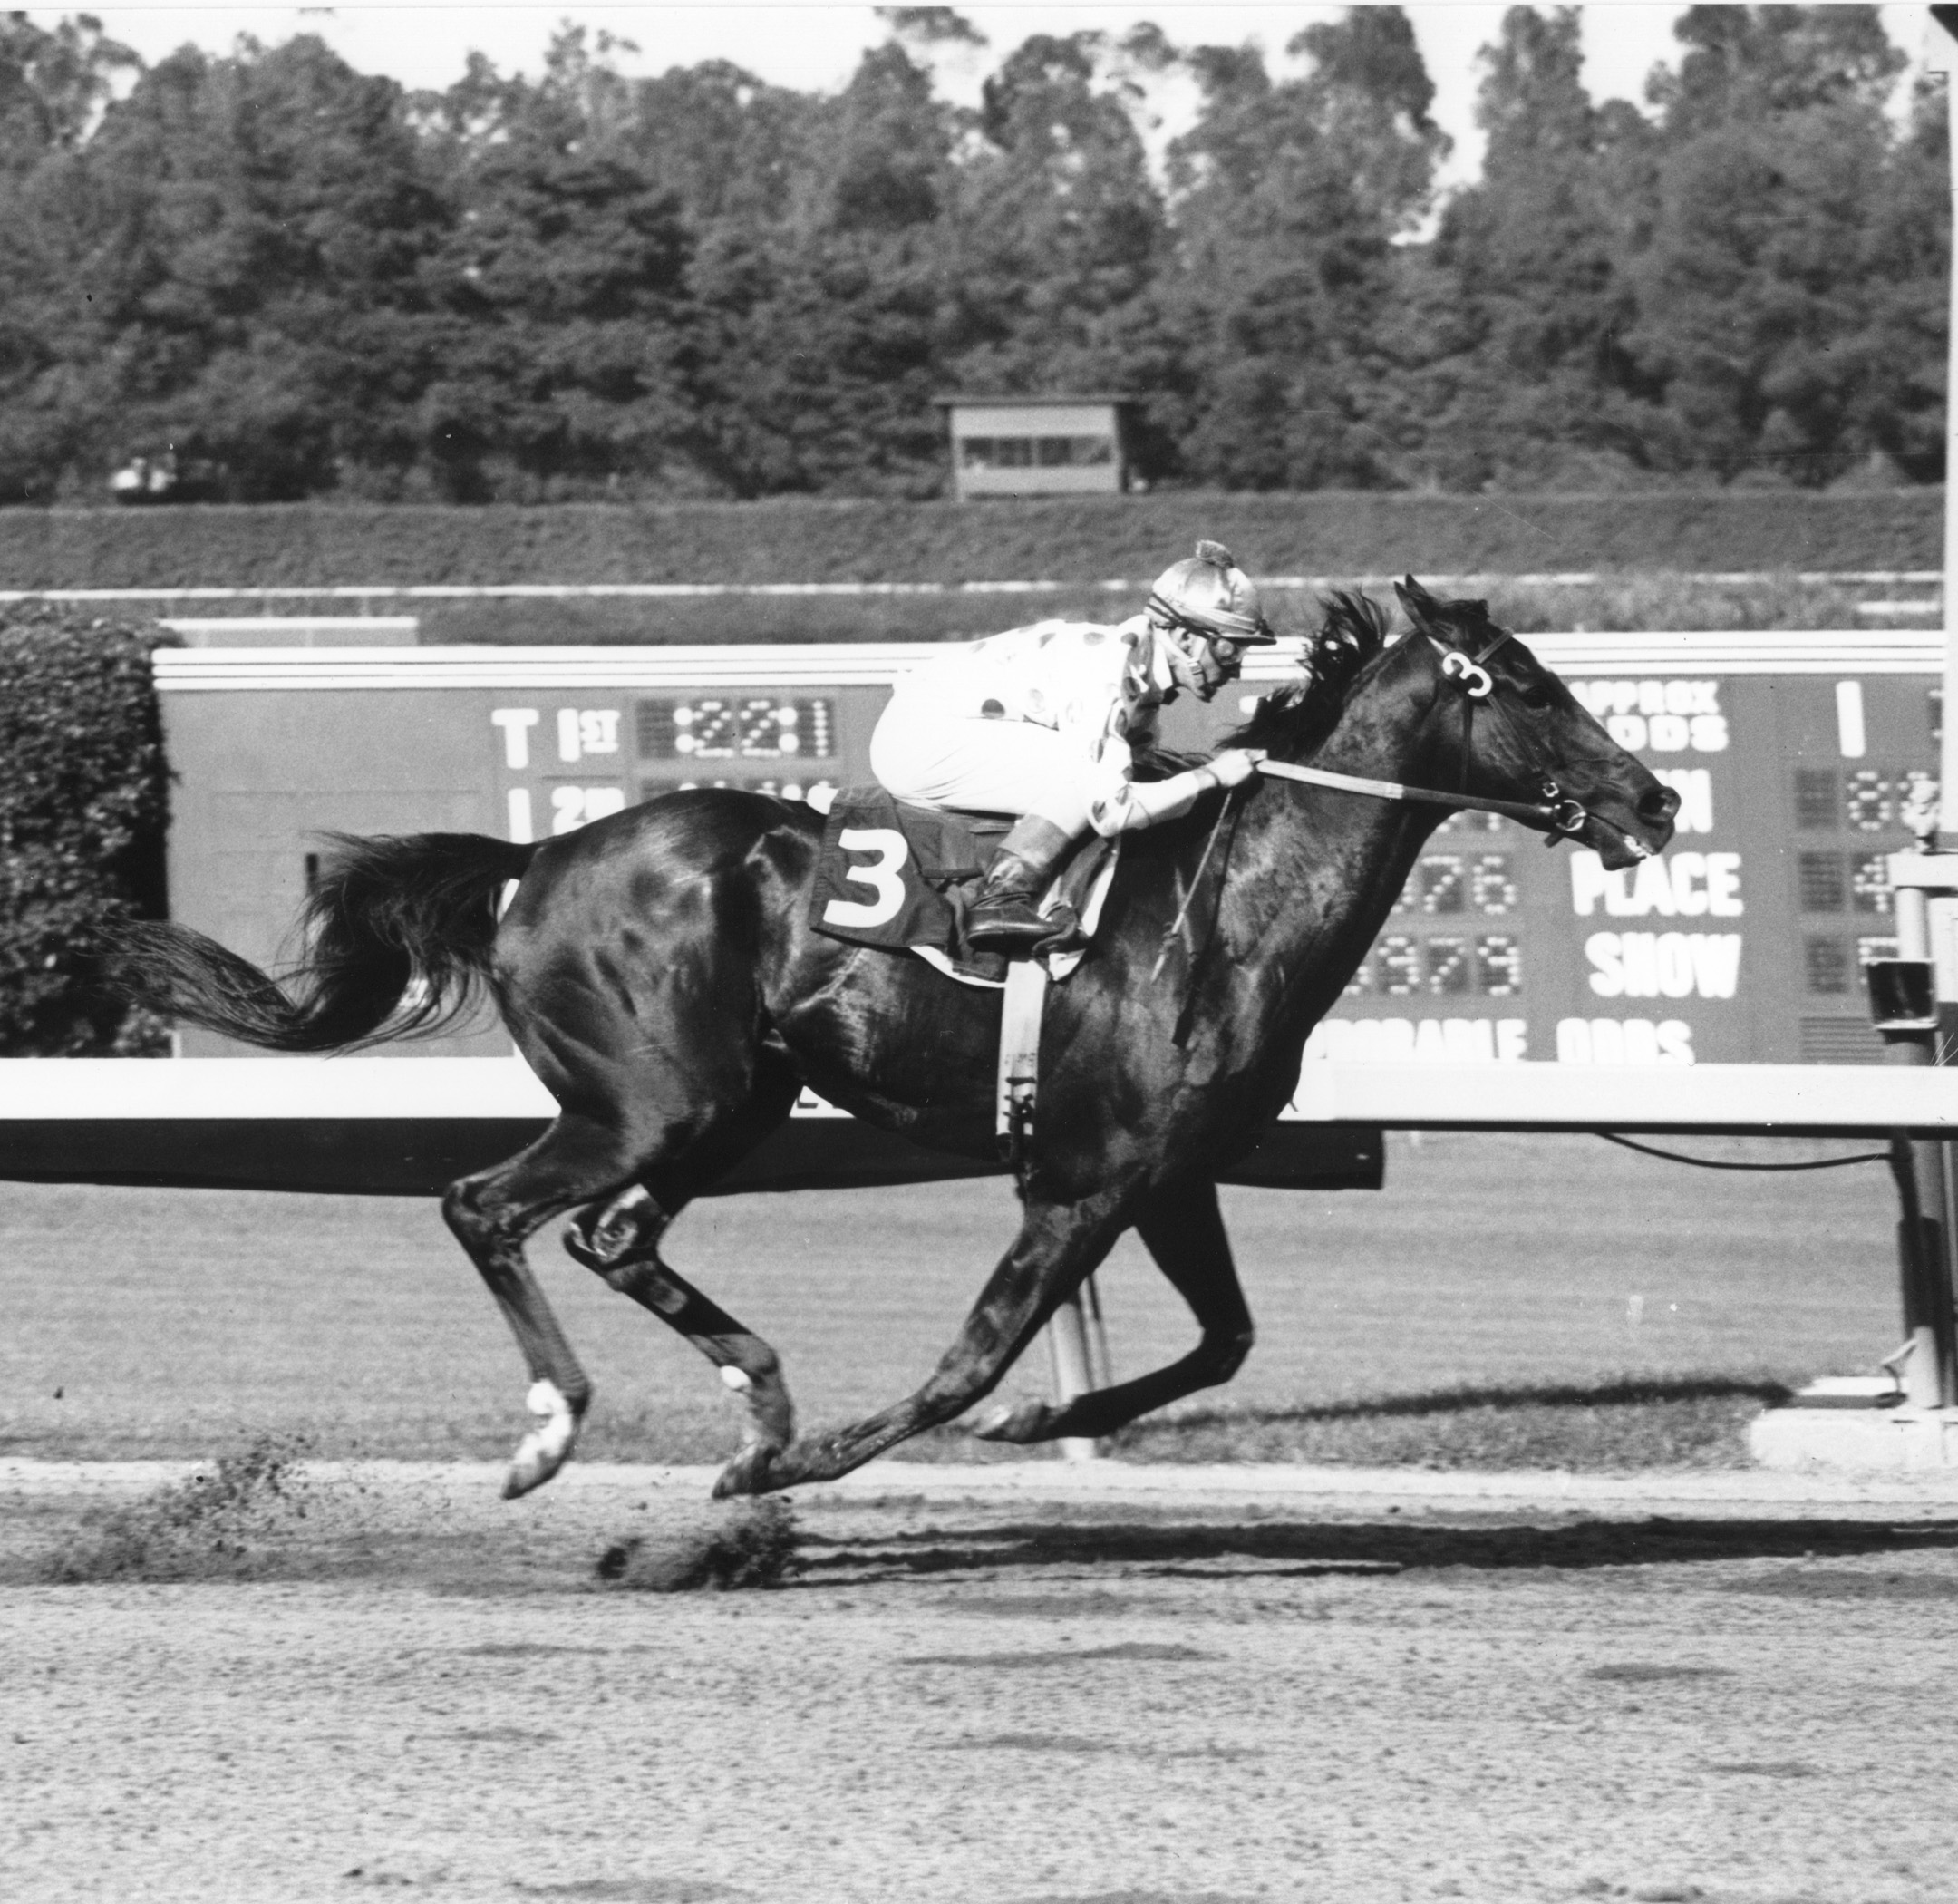 Native Diver (Jerry Lambert up) winning the 1965 Hollywood Gold Cup at Hollywood Park (Stidham & Assoc./Museum Collection)